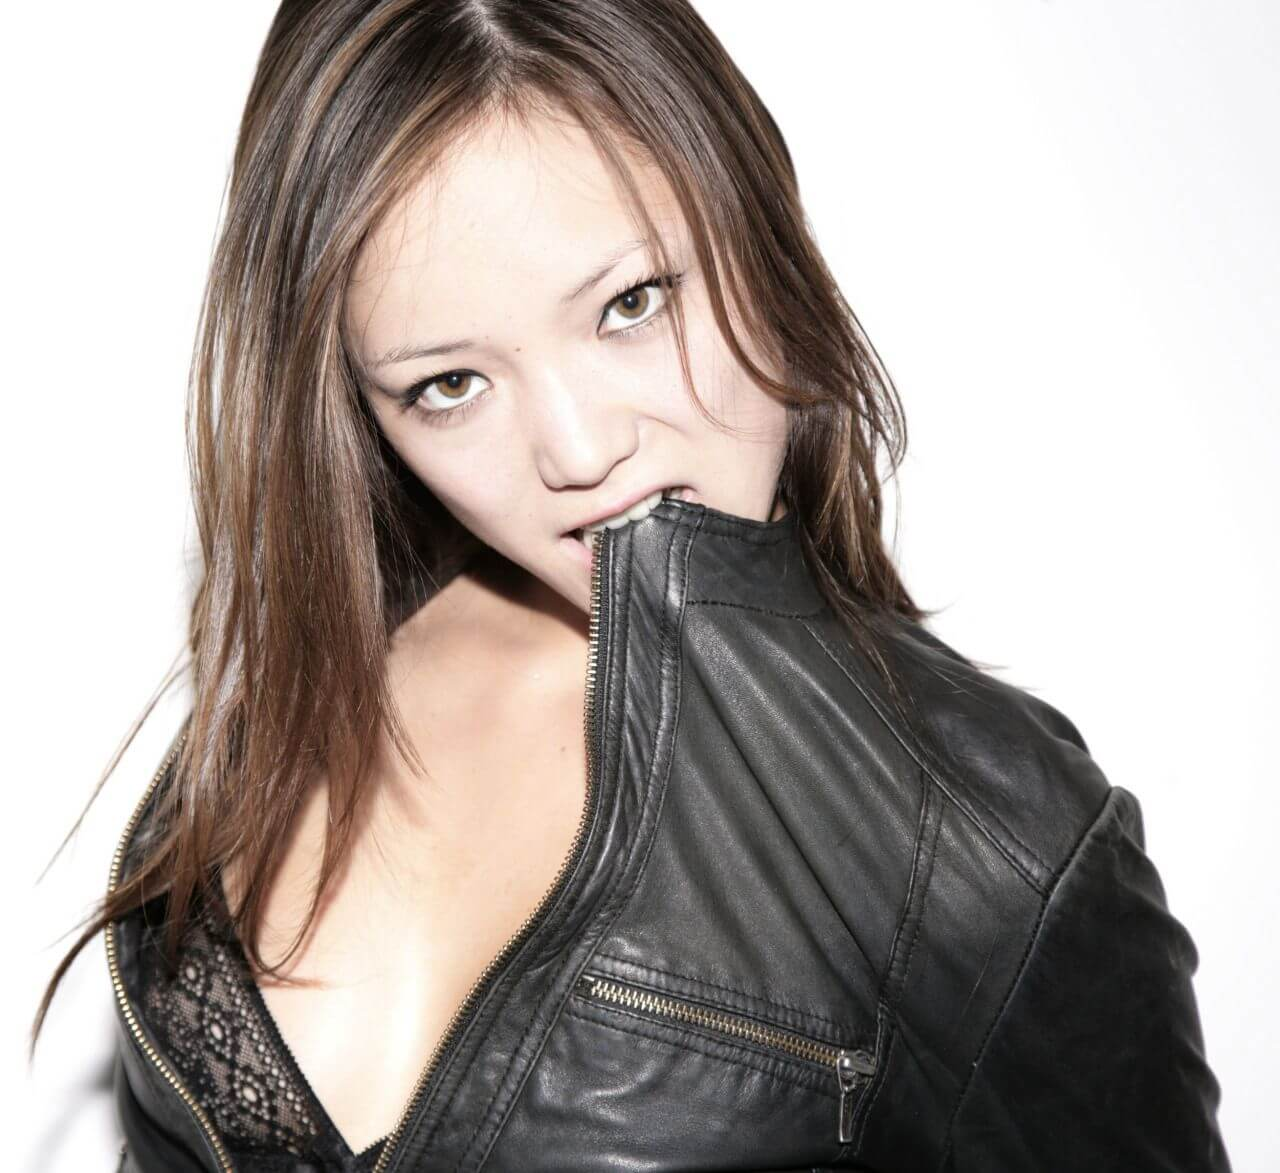 70+ Hot Pictures Of Pom Klementieff Who Plays Mantis In